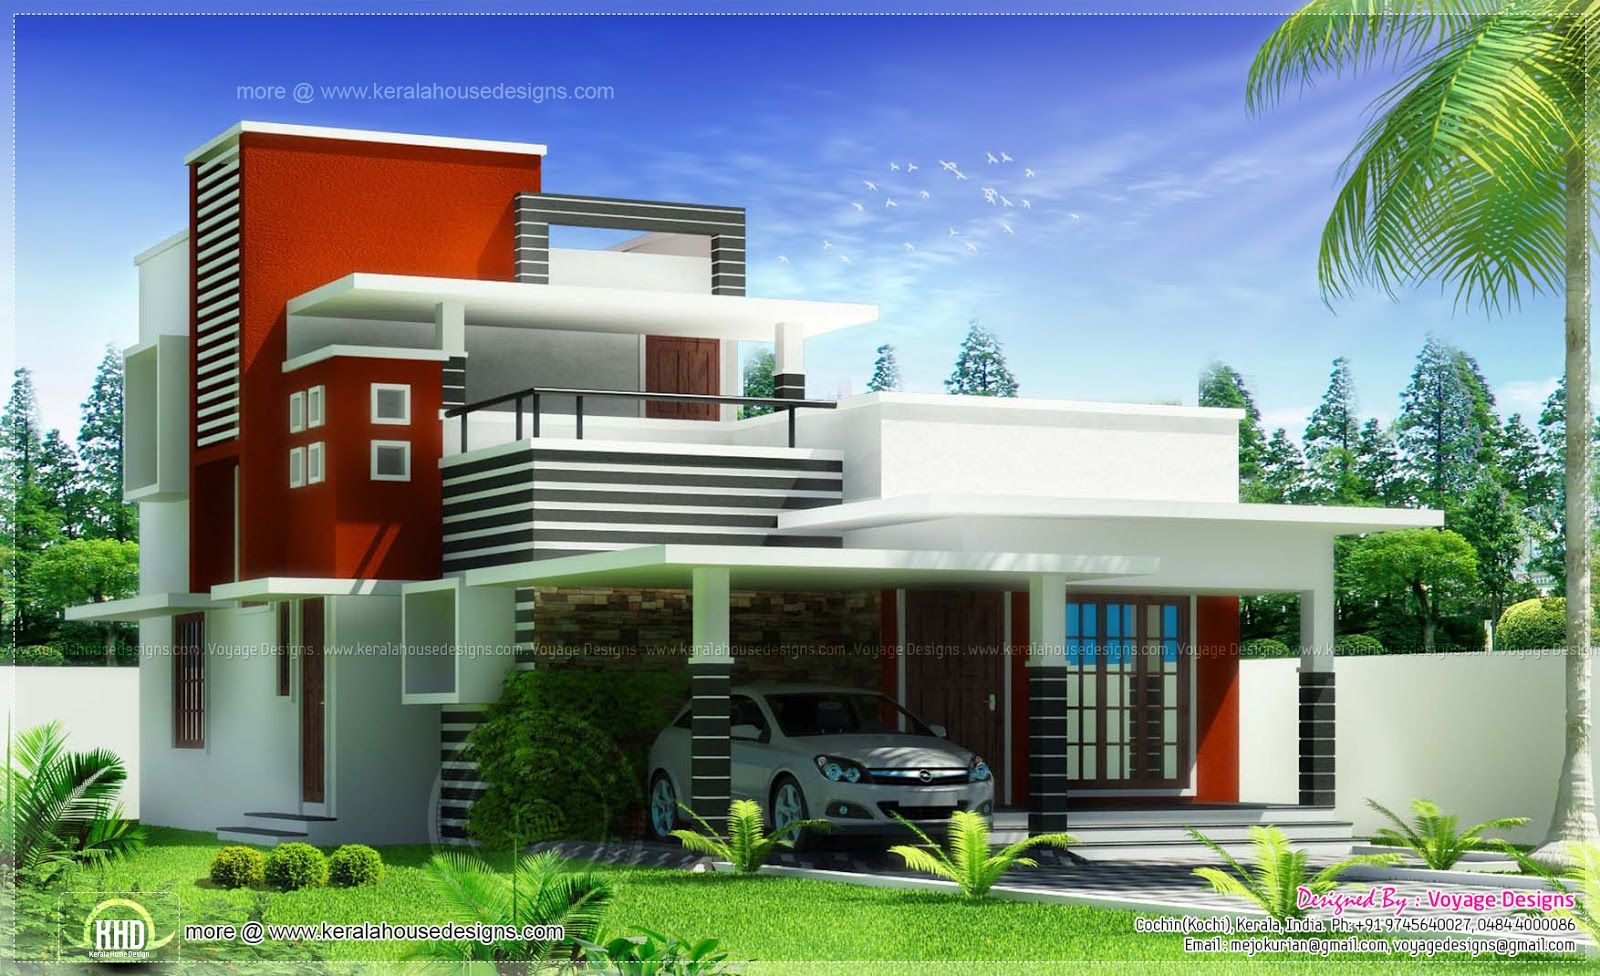 Kerala house designs architecture pinterest kerala for Home designs kerala style